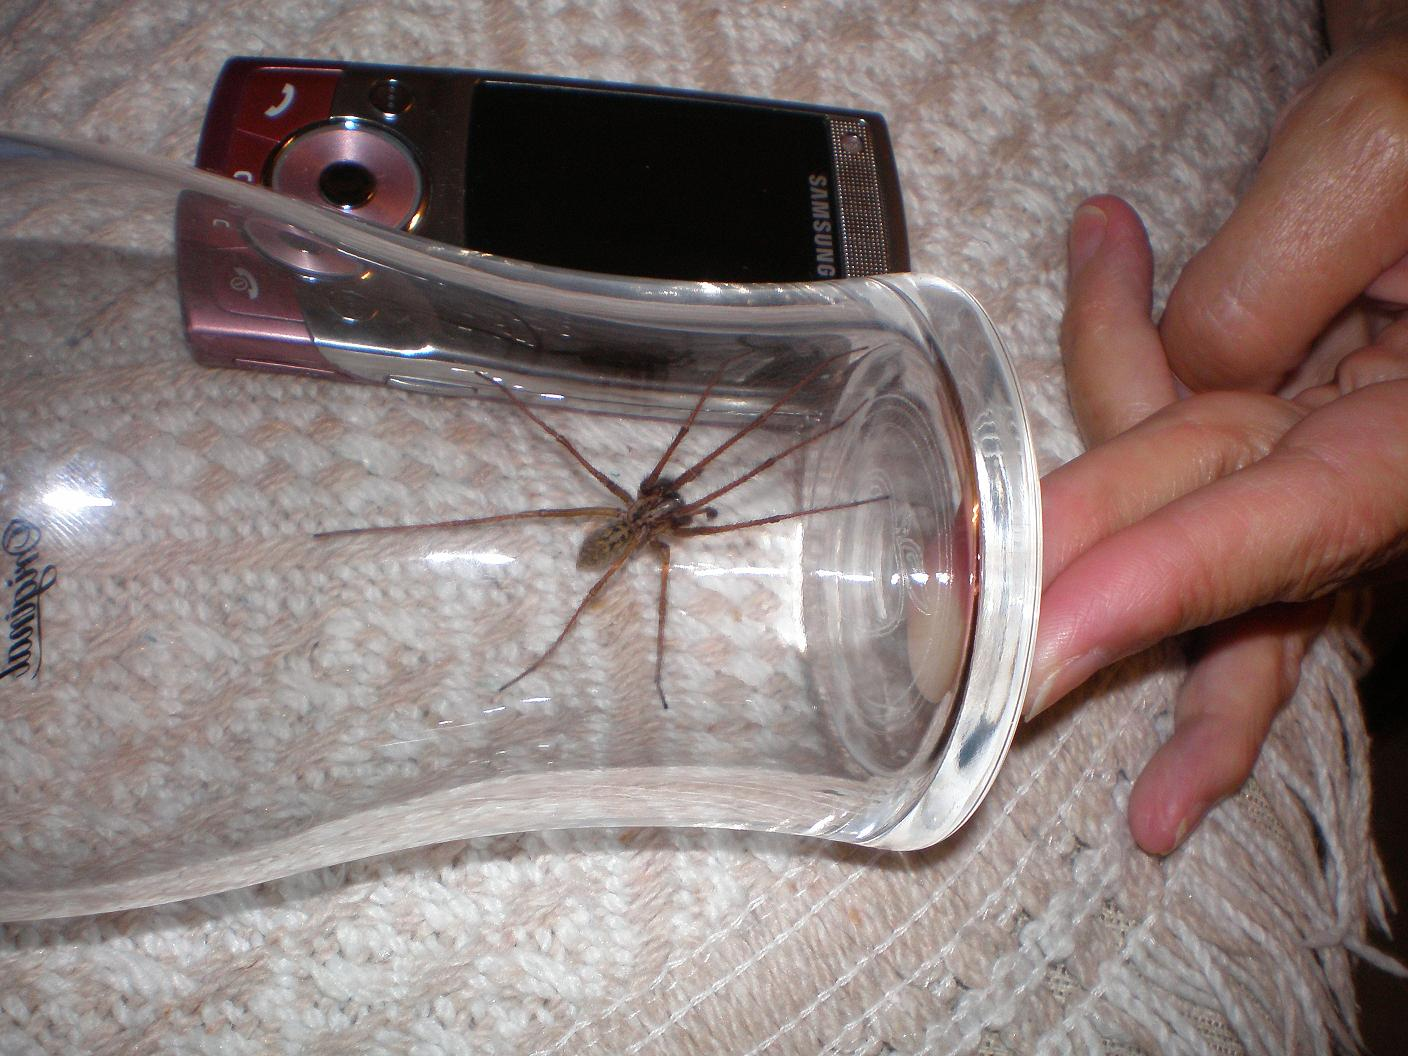 They re alright spiders if they move slowly its the quick ones that